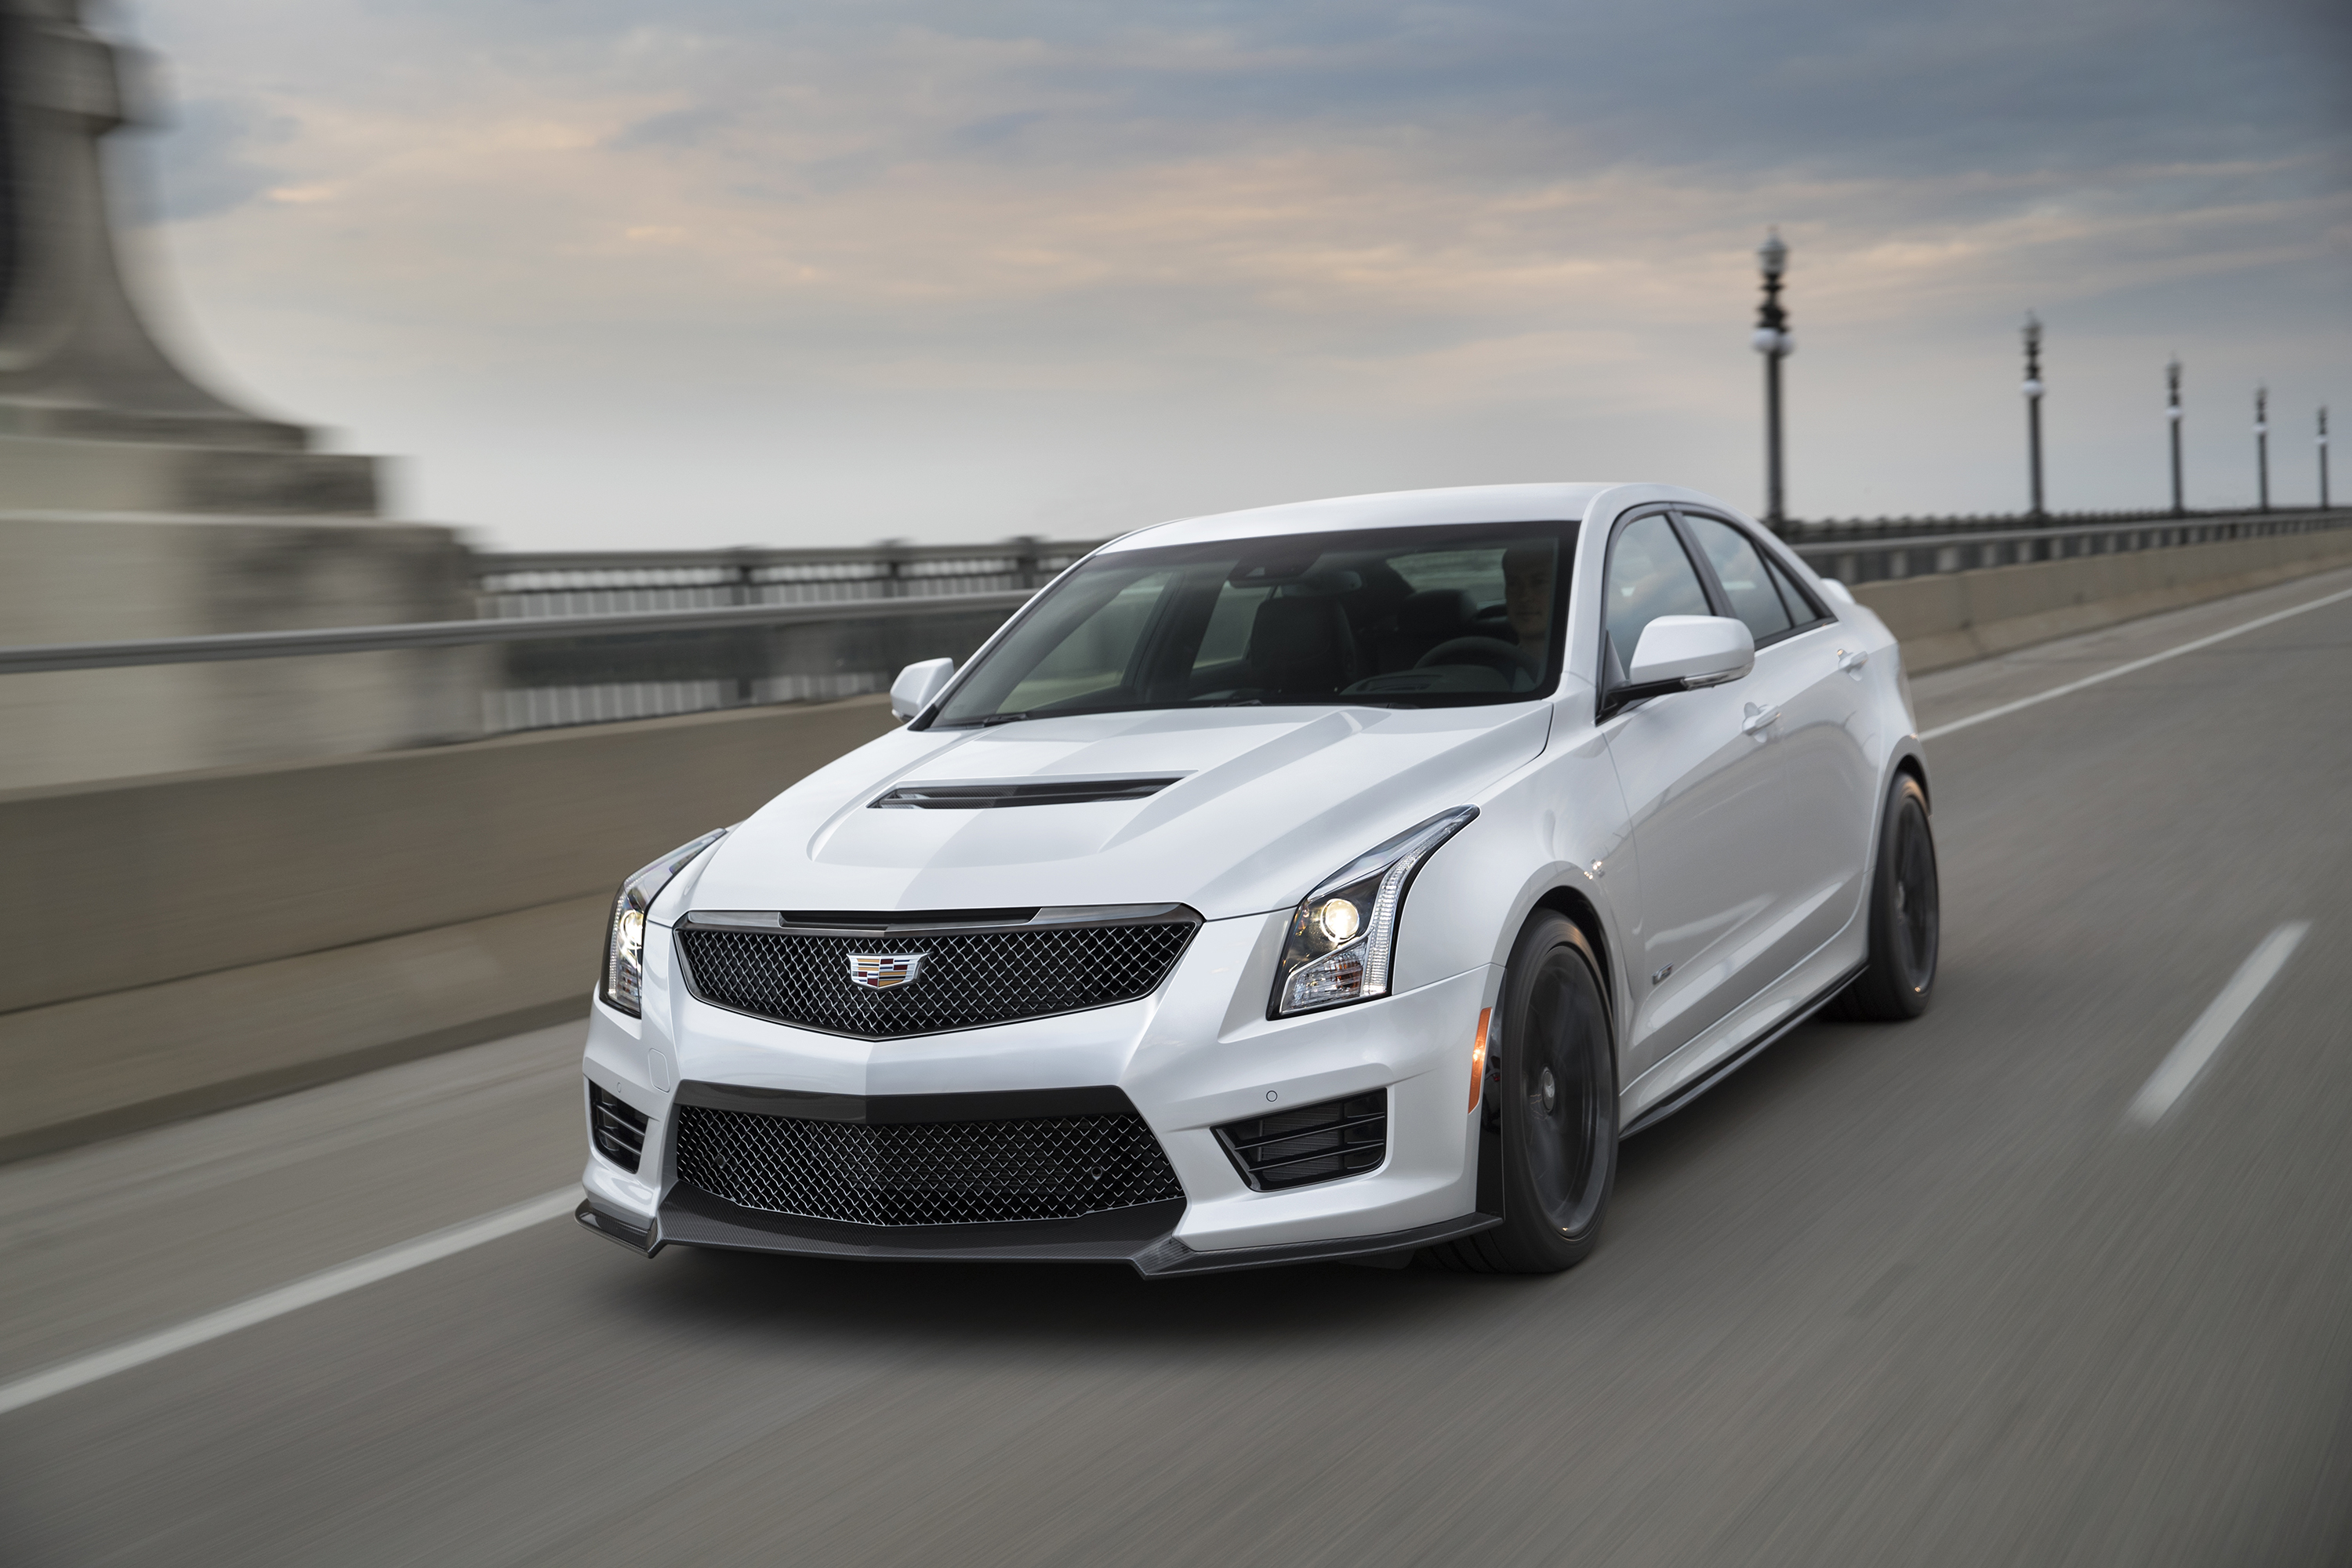 2017 Cadillac Ats V Review Ratings Specs Prices And Photos The Car Connection